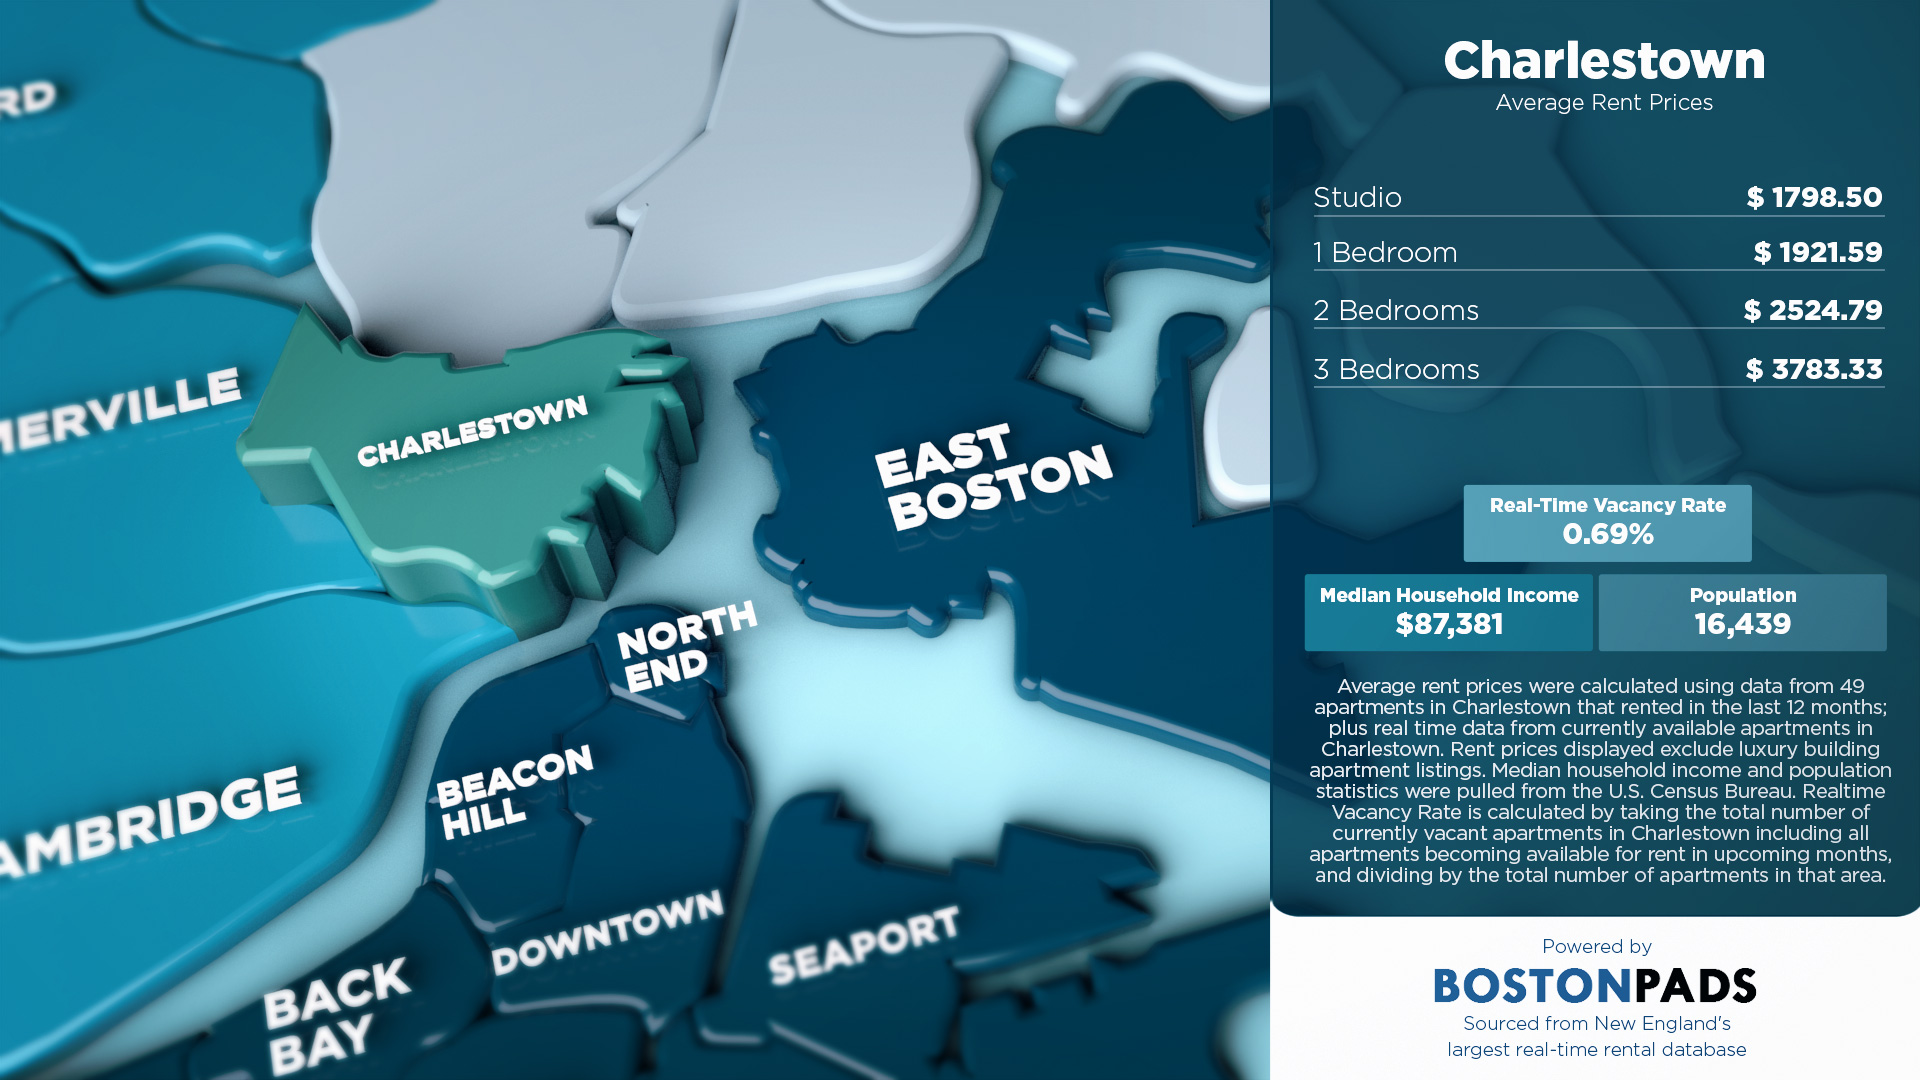 Average Rent Prices in Charlestown